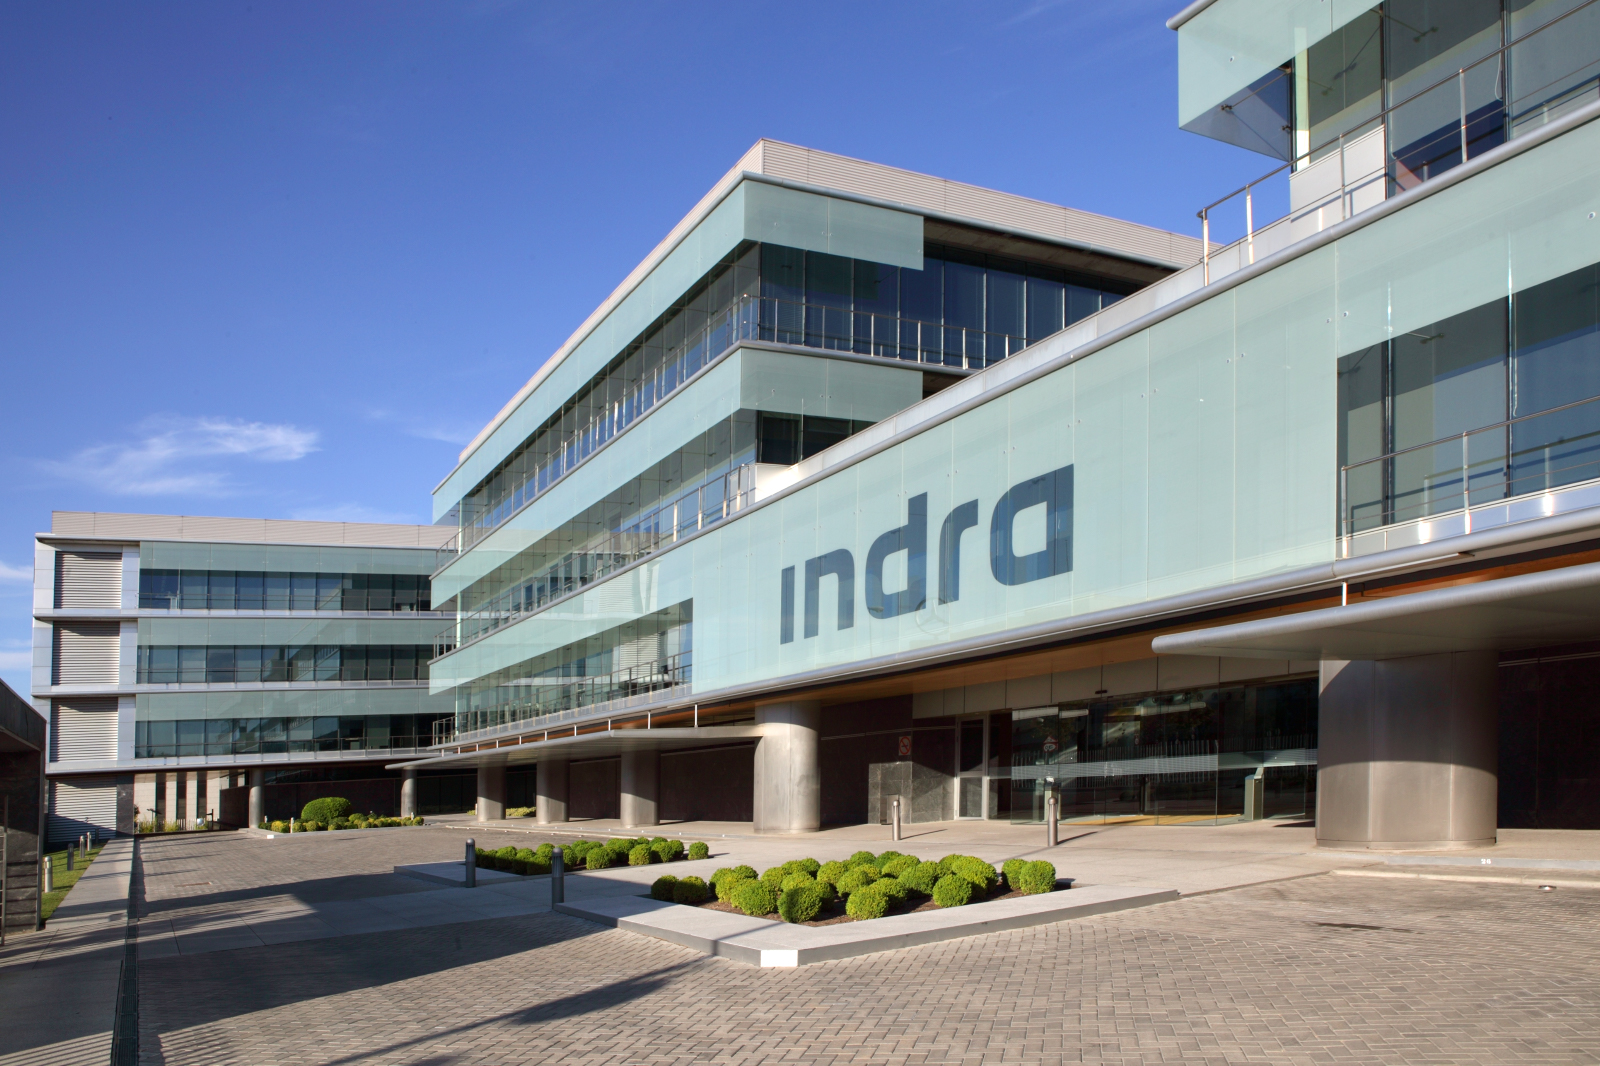 Indra rinnova la sua presenza nel Dow Jones Sustainability Index World